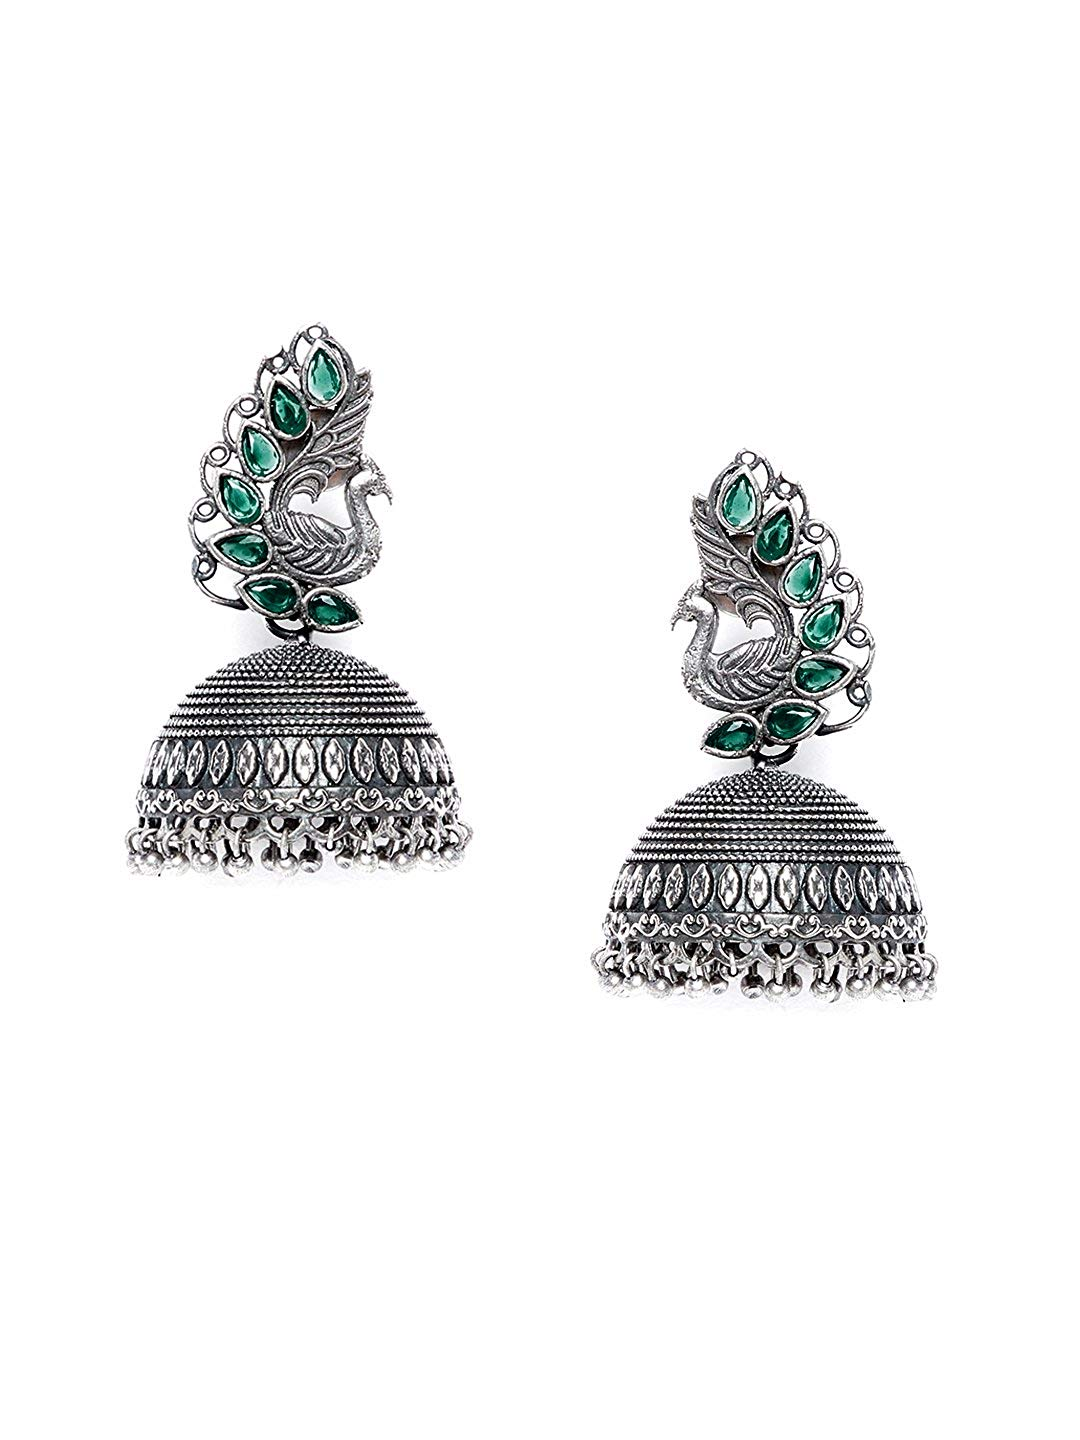 ZeroKaata/ Fashion Jewellery Floral Motifs Tribal Jewellery Silver Plated Jhumkis Combo For Women /& Girls